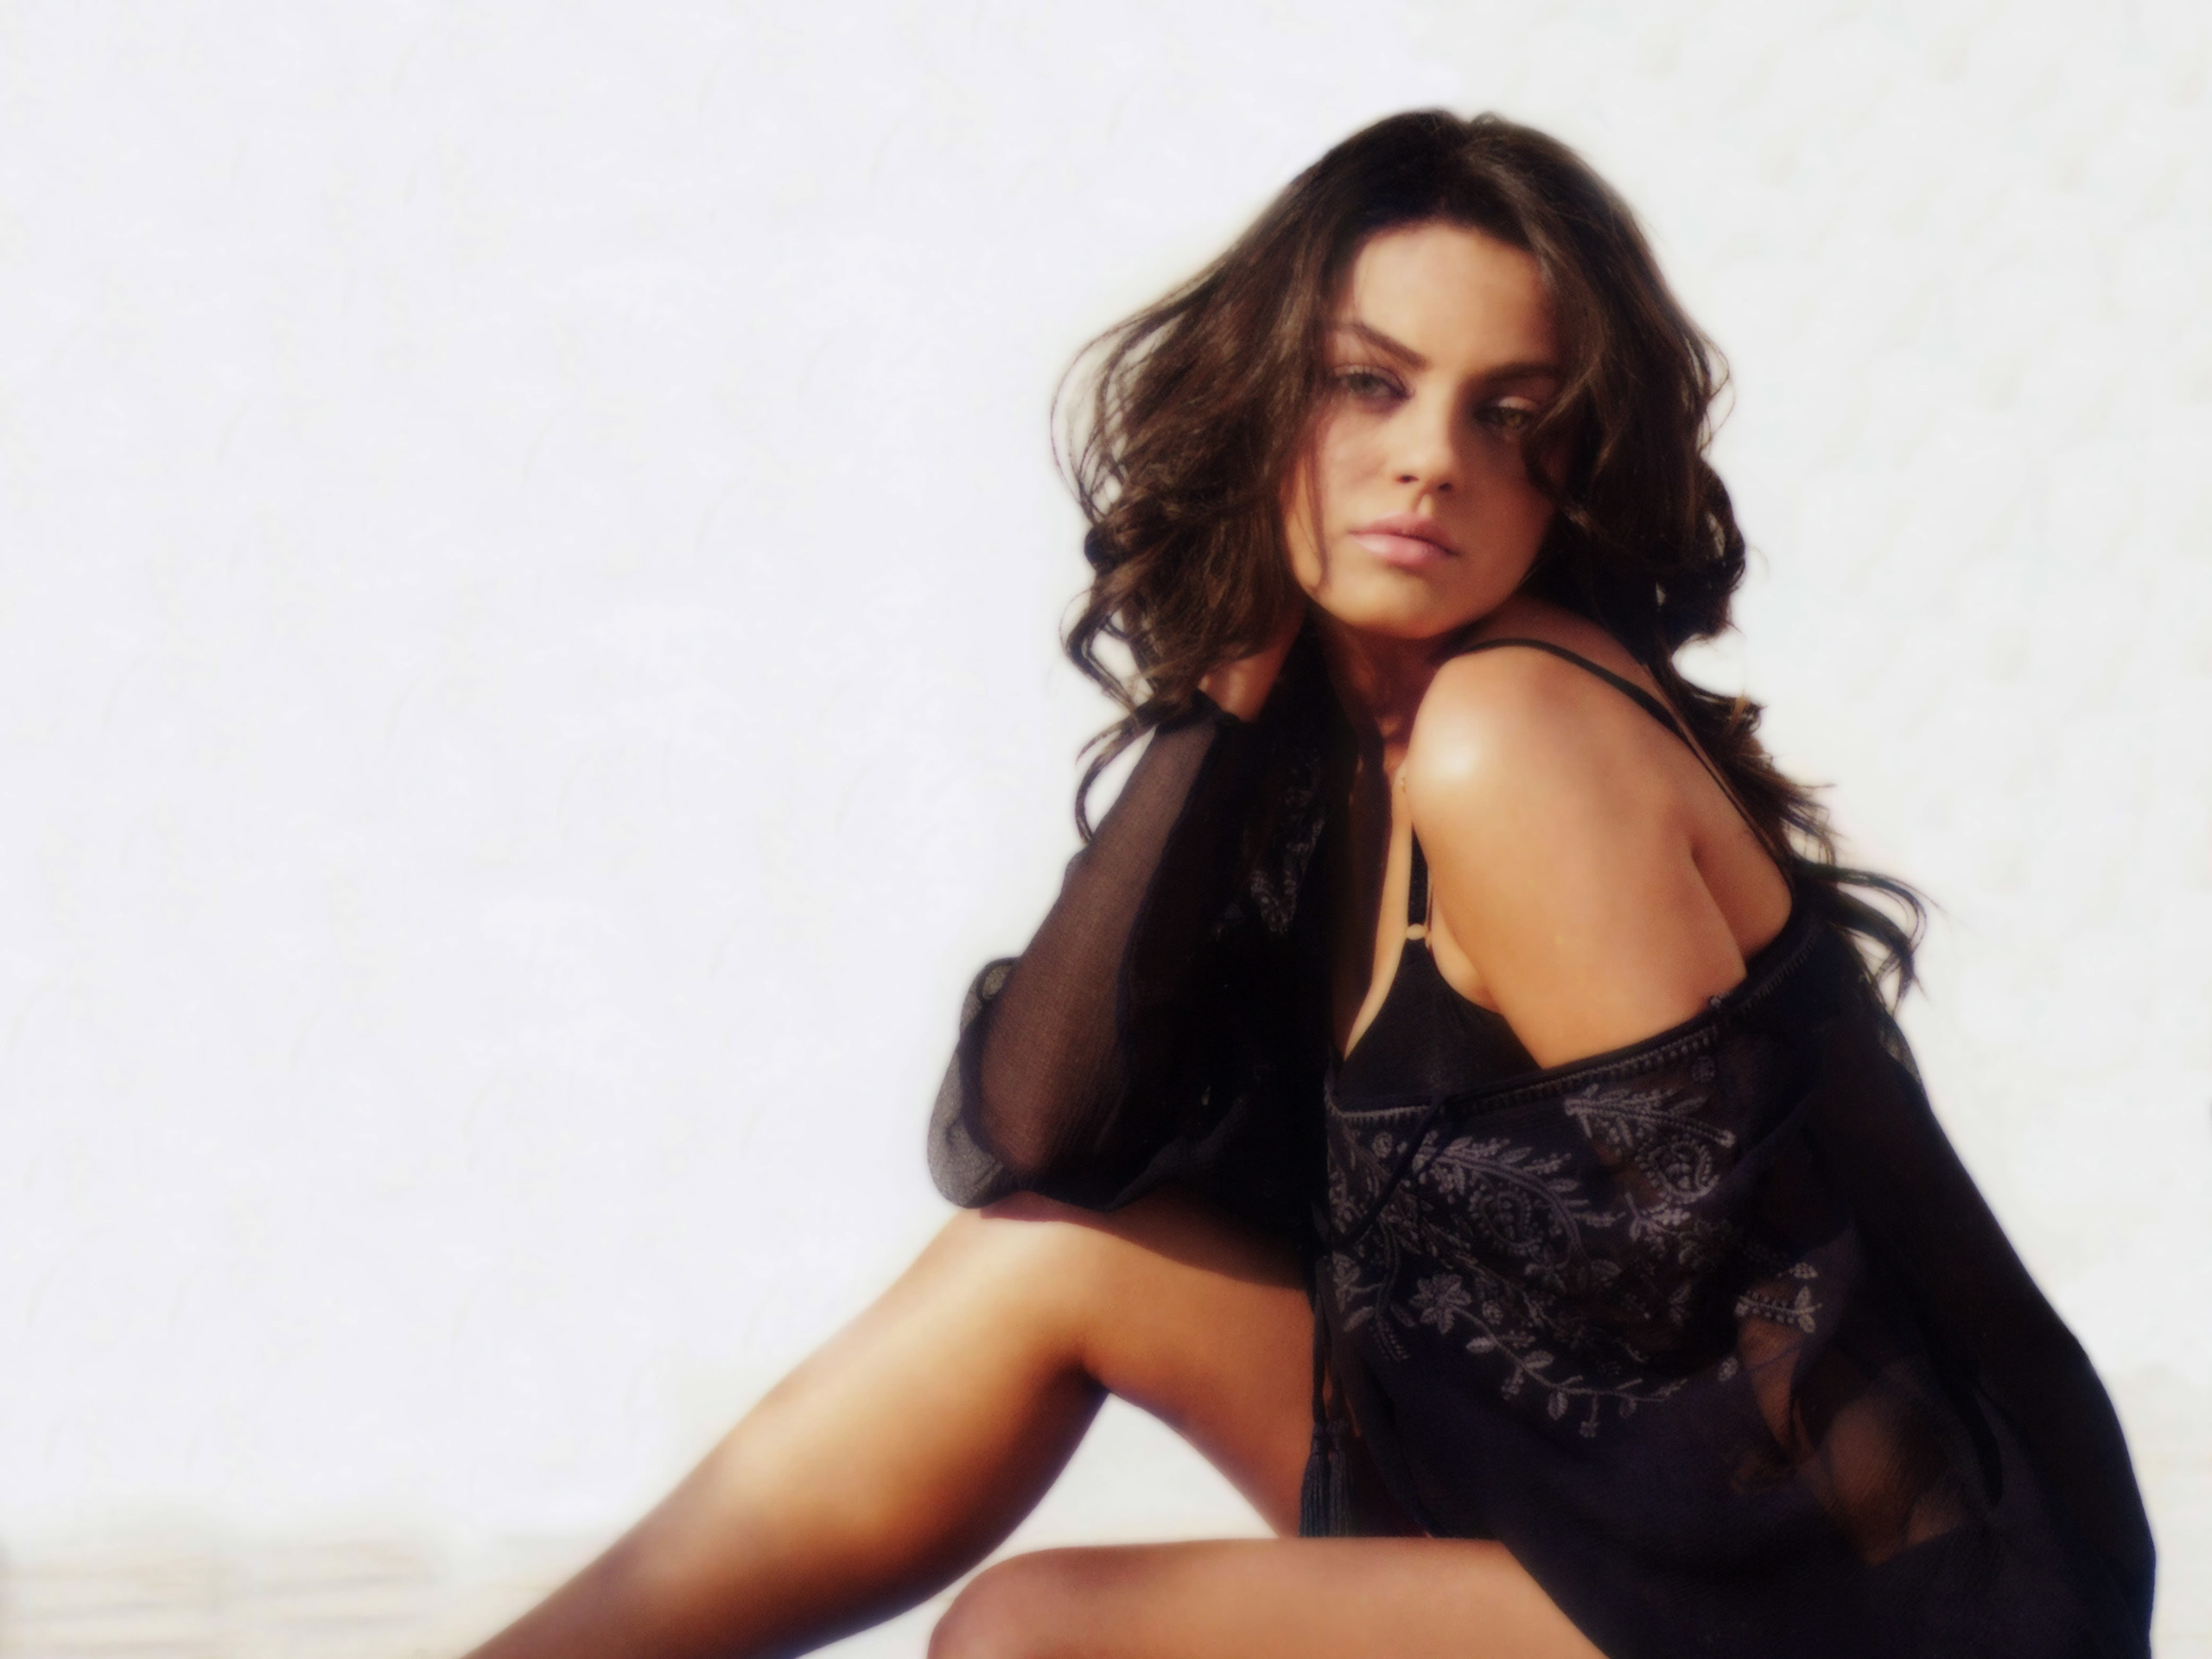 mila kunis hd wallpapers for desktop download